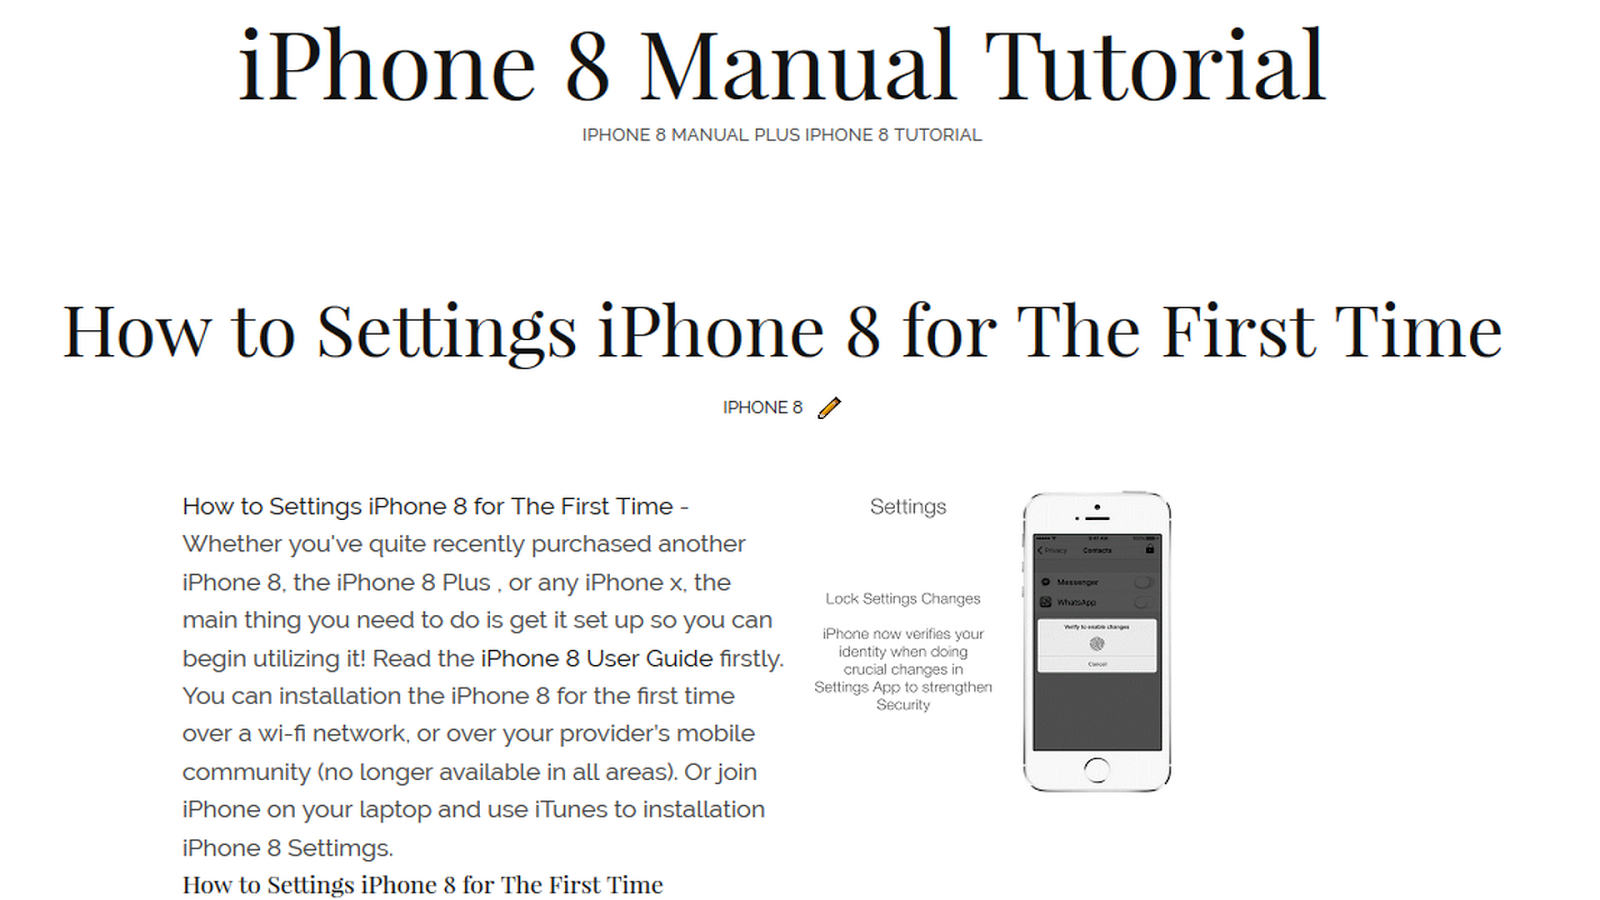 iphone 8 user guide tutorial tips and tricks jazminmedrano rh jazminmedrano com manual user guide gomco 280 kindle user guide manual